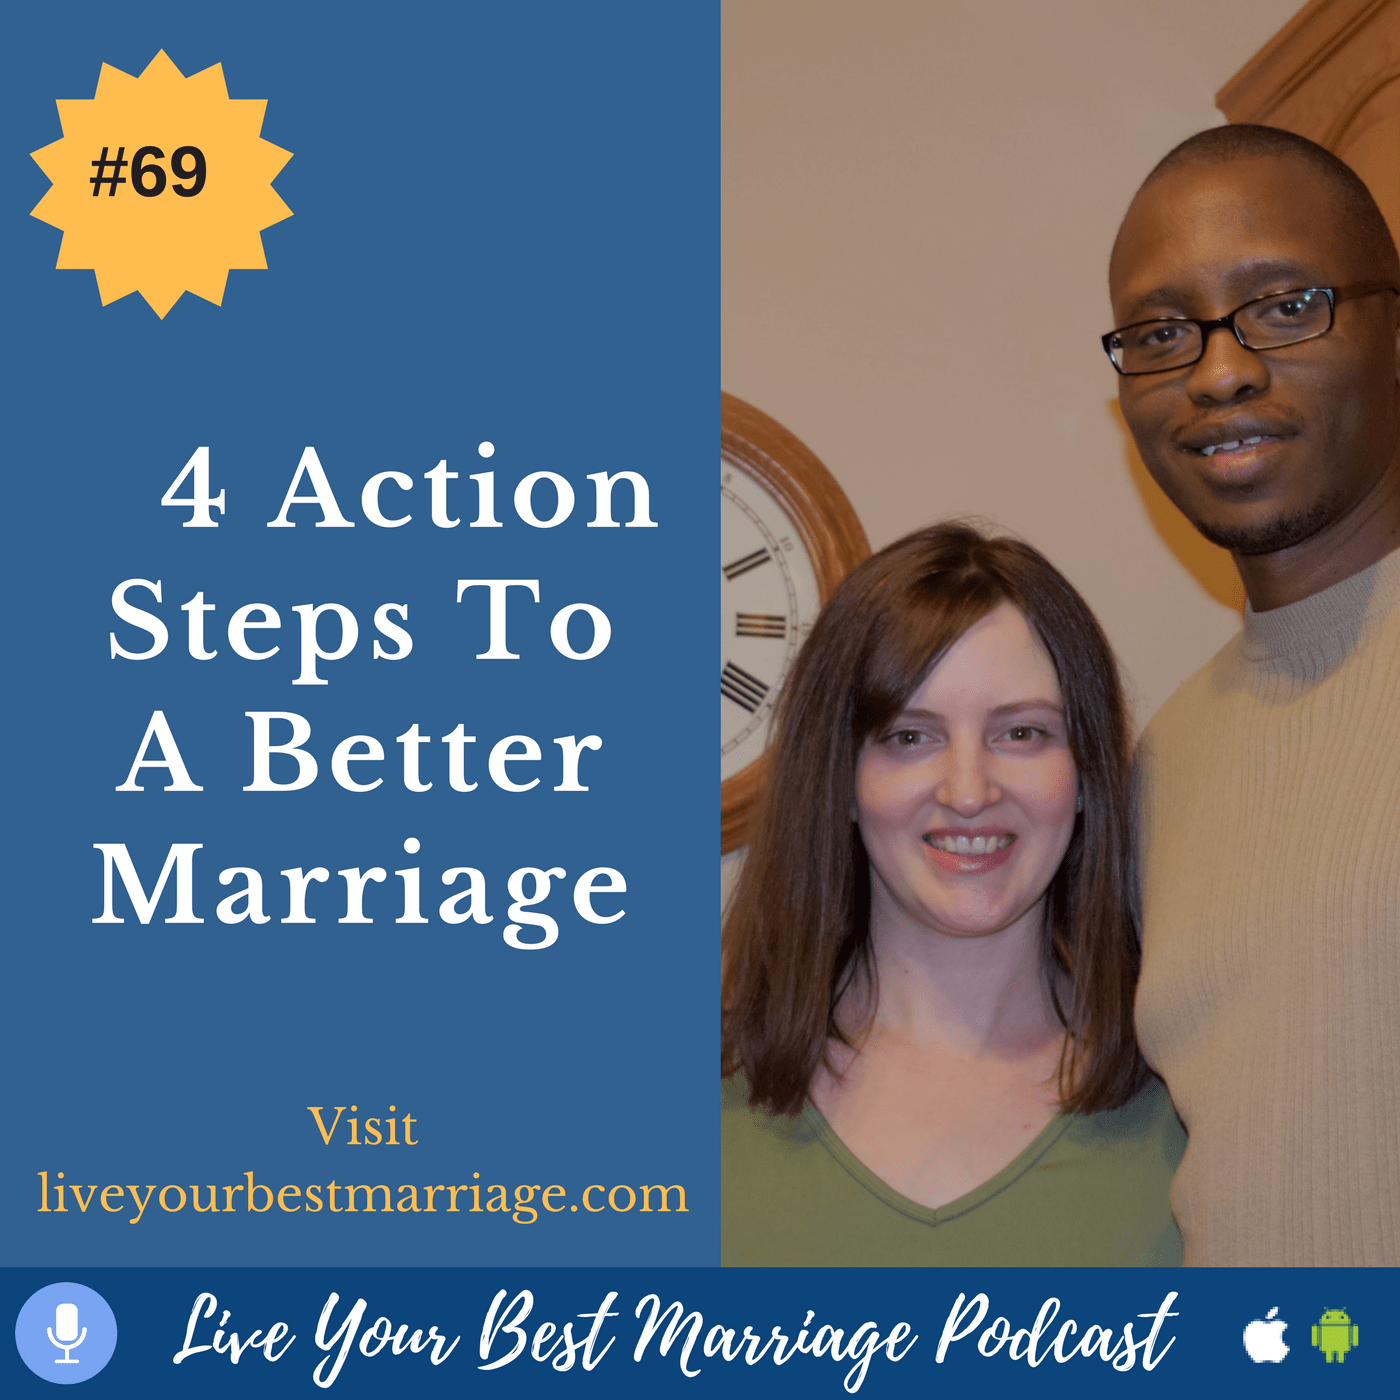 episode-69-4-action-steps-to-a-better-marriage-audio_thumbnail.png